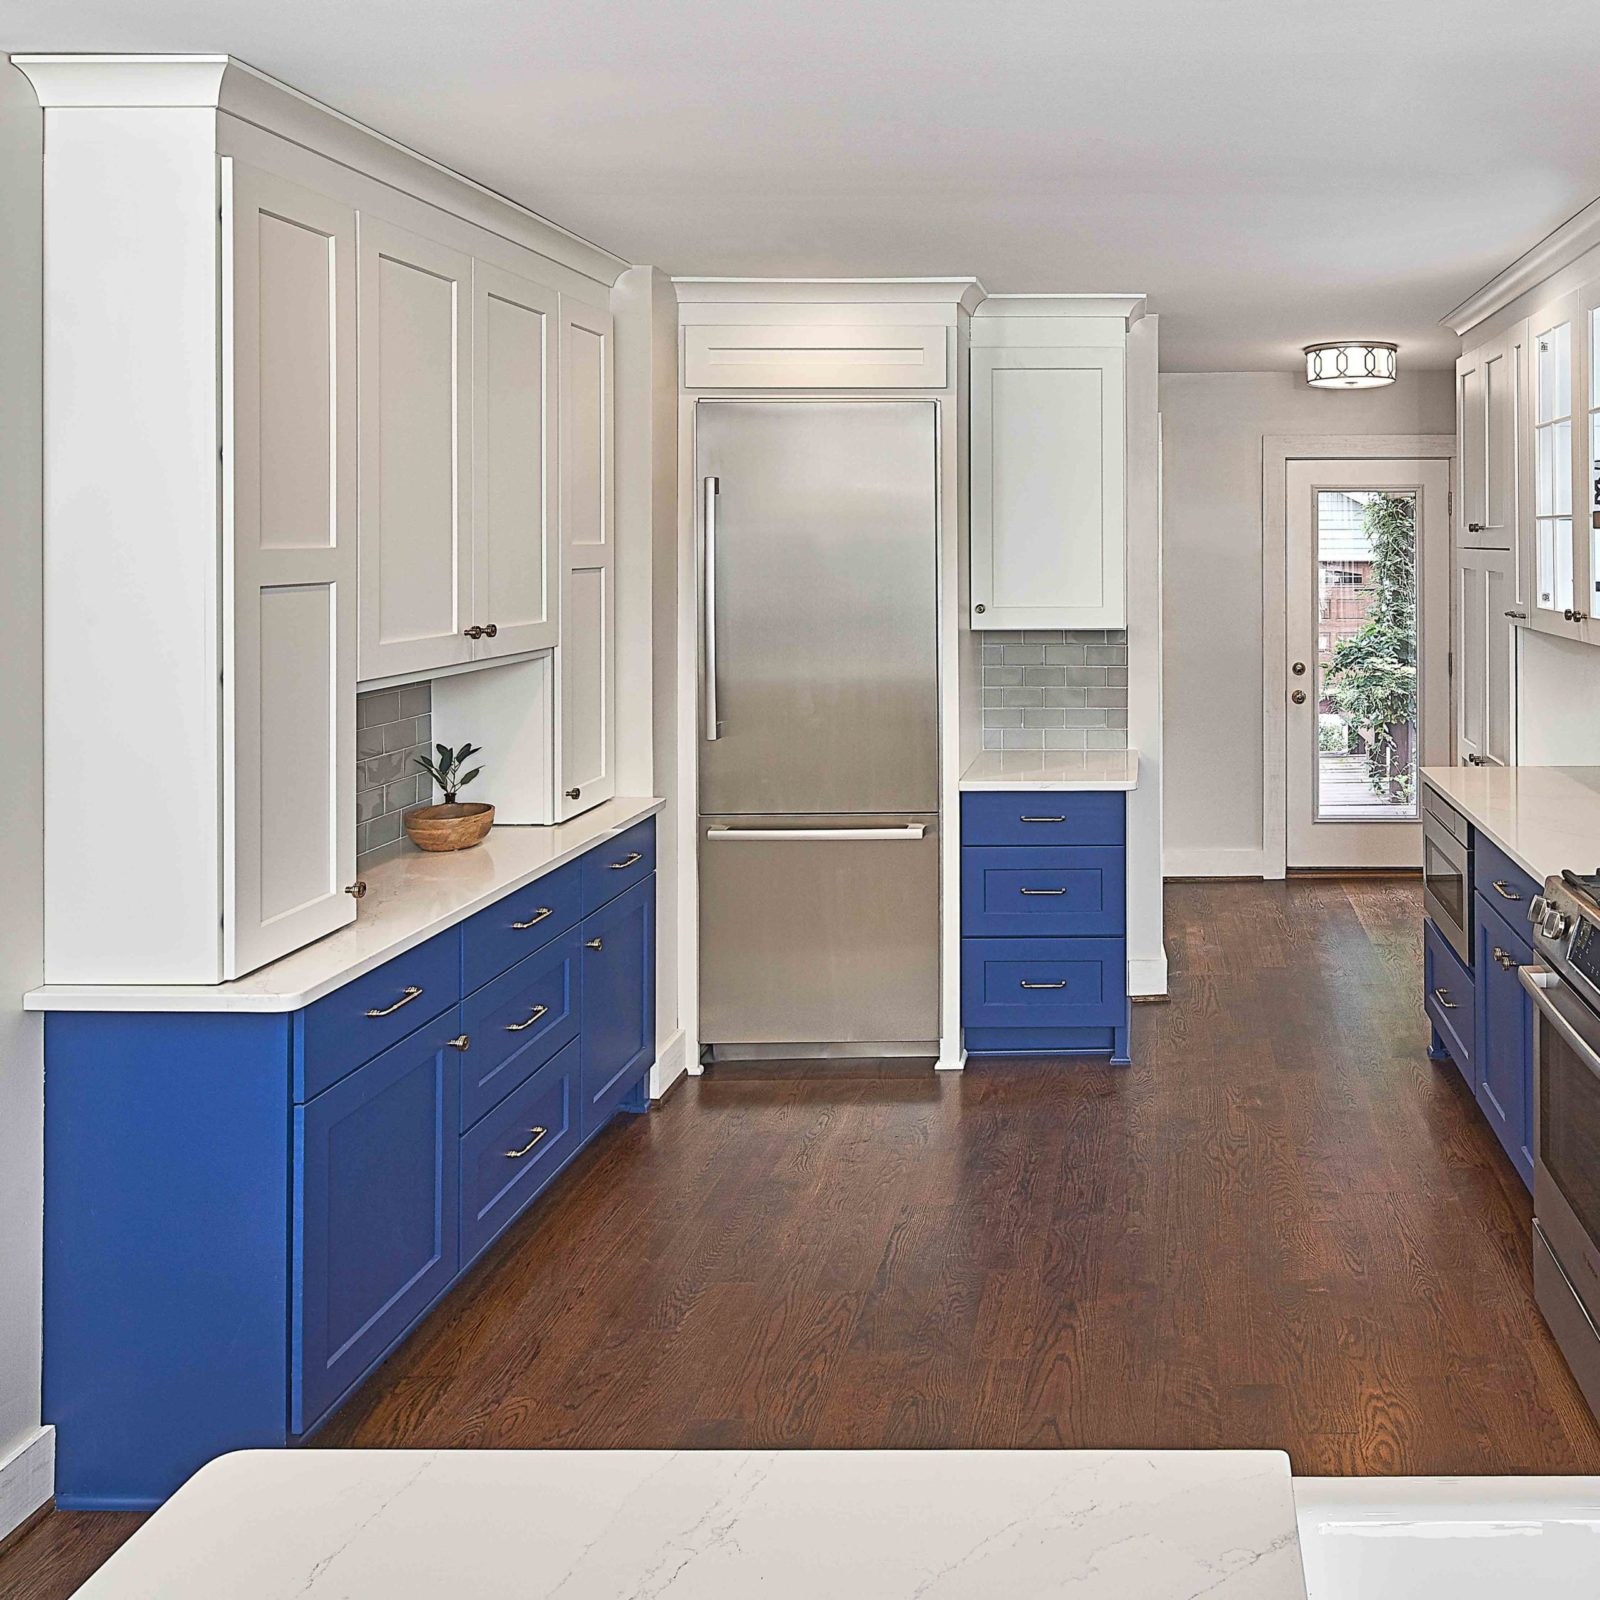 bungalow-home-remodel-revision-design-whole-house-renovation-charlotte-nc